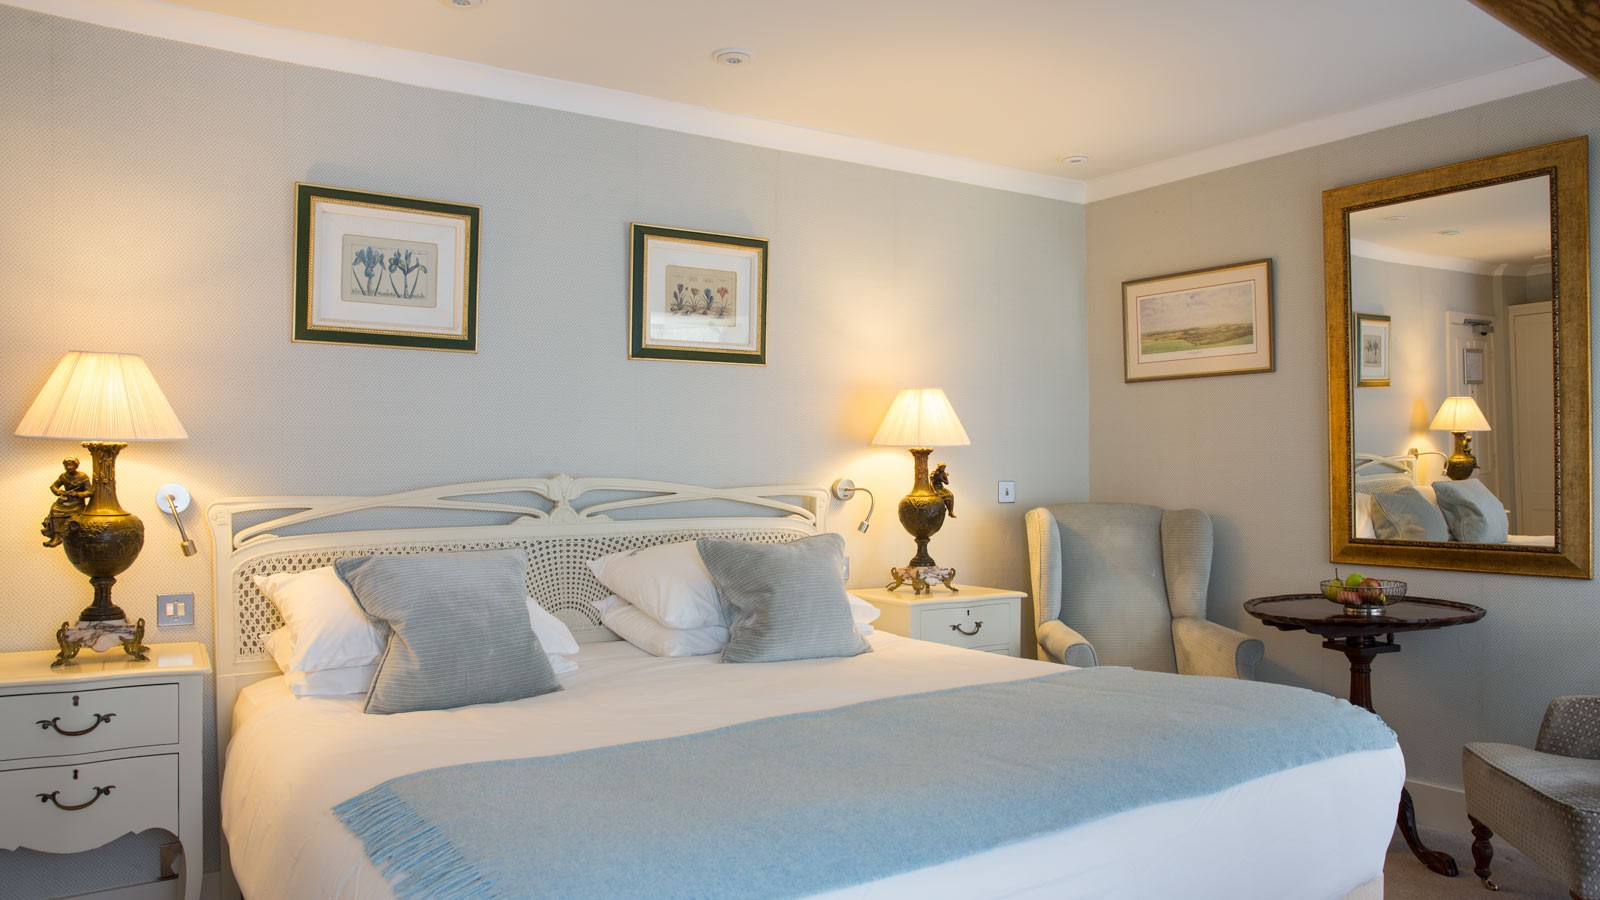 Take a look at our Superior Room here at The Priory Wareham, fitted with a sumptuous super king bed with garden views.